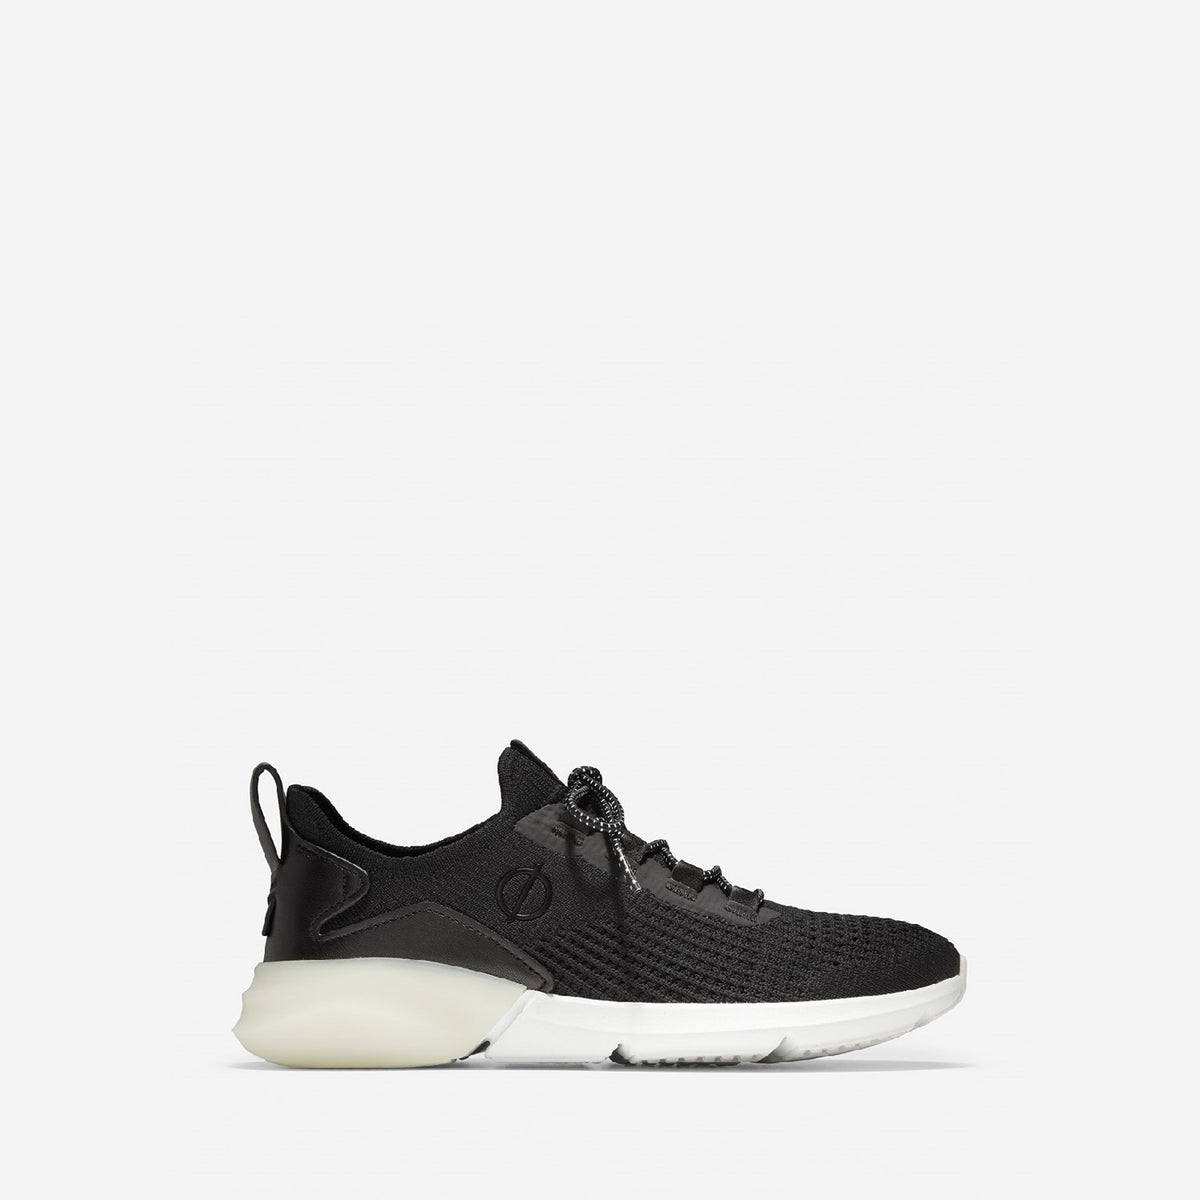 Women's ZERØGRAND All-Day Lace Up Runner Black/White